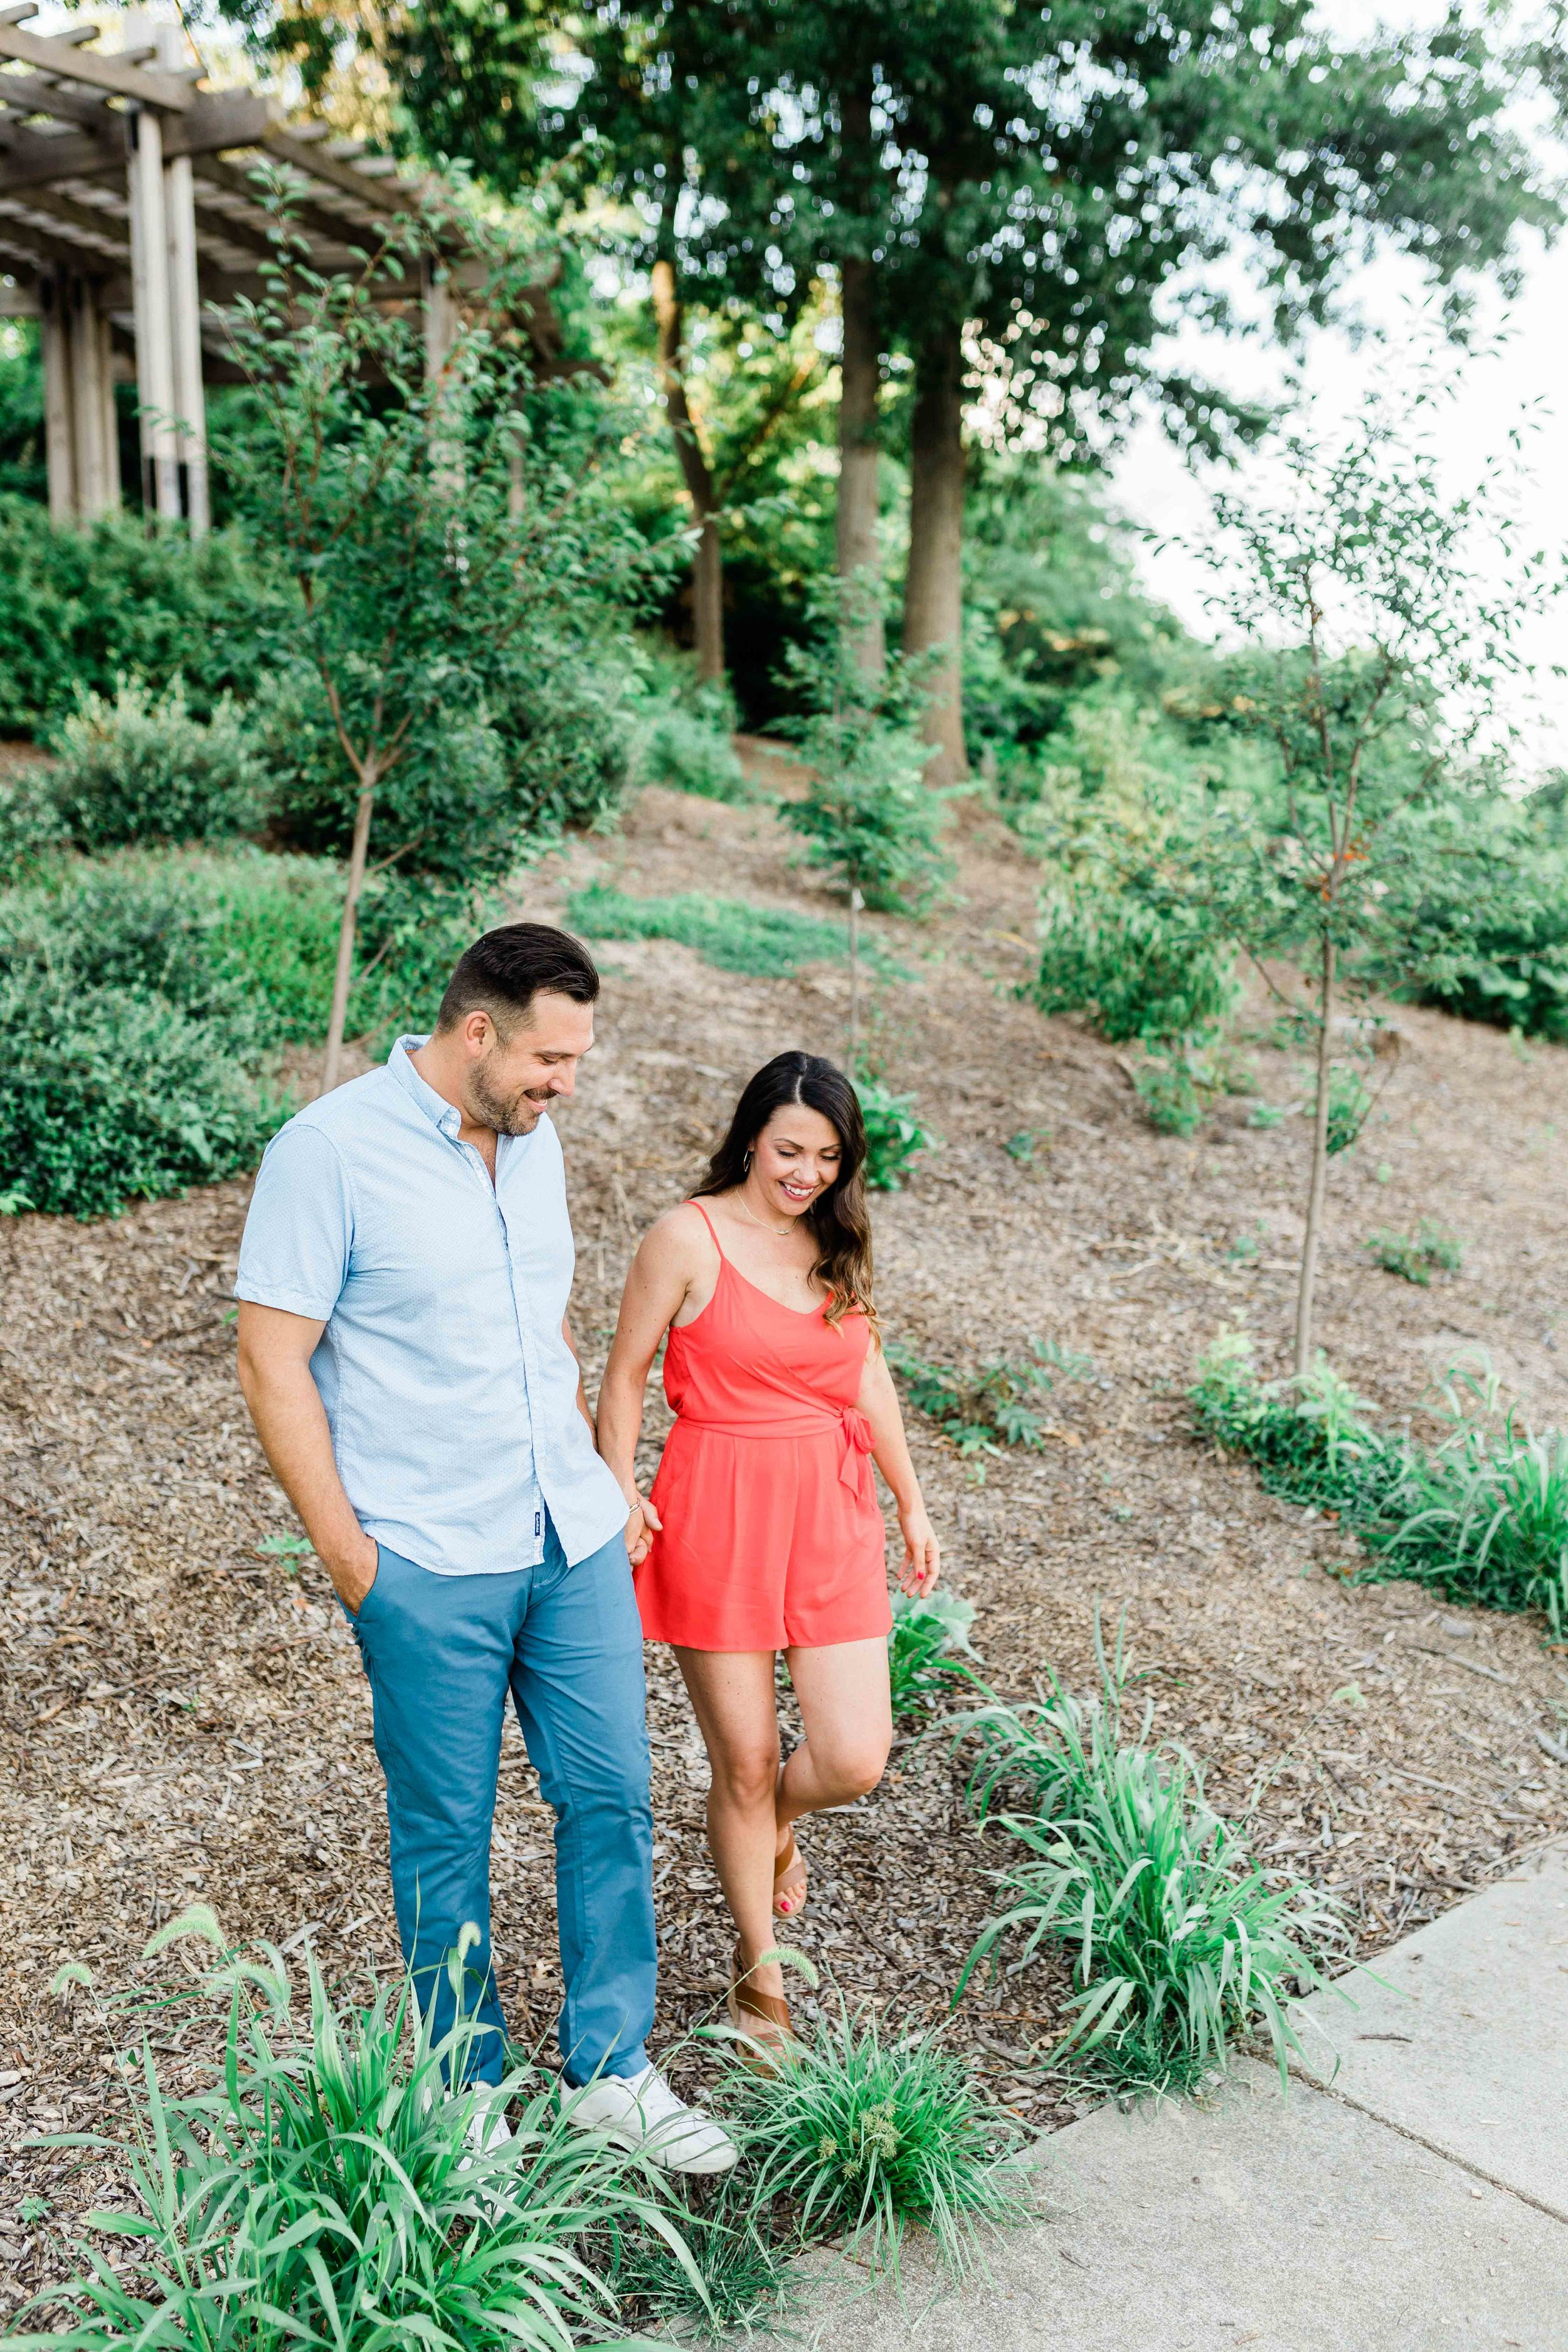 ault park cincinnati engagement photos-2.jpg